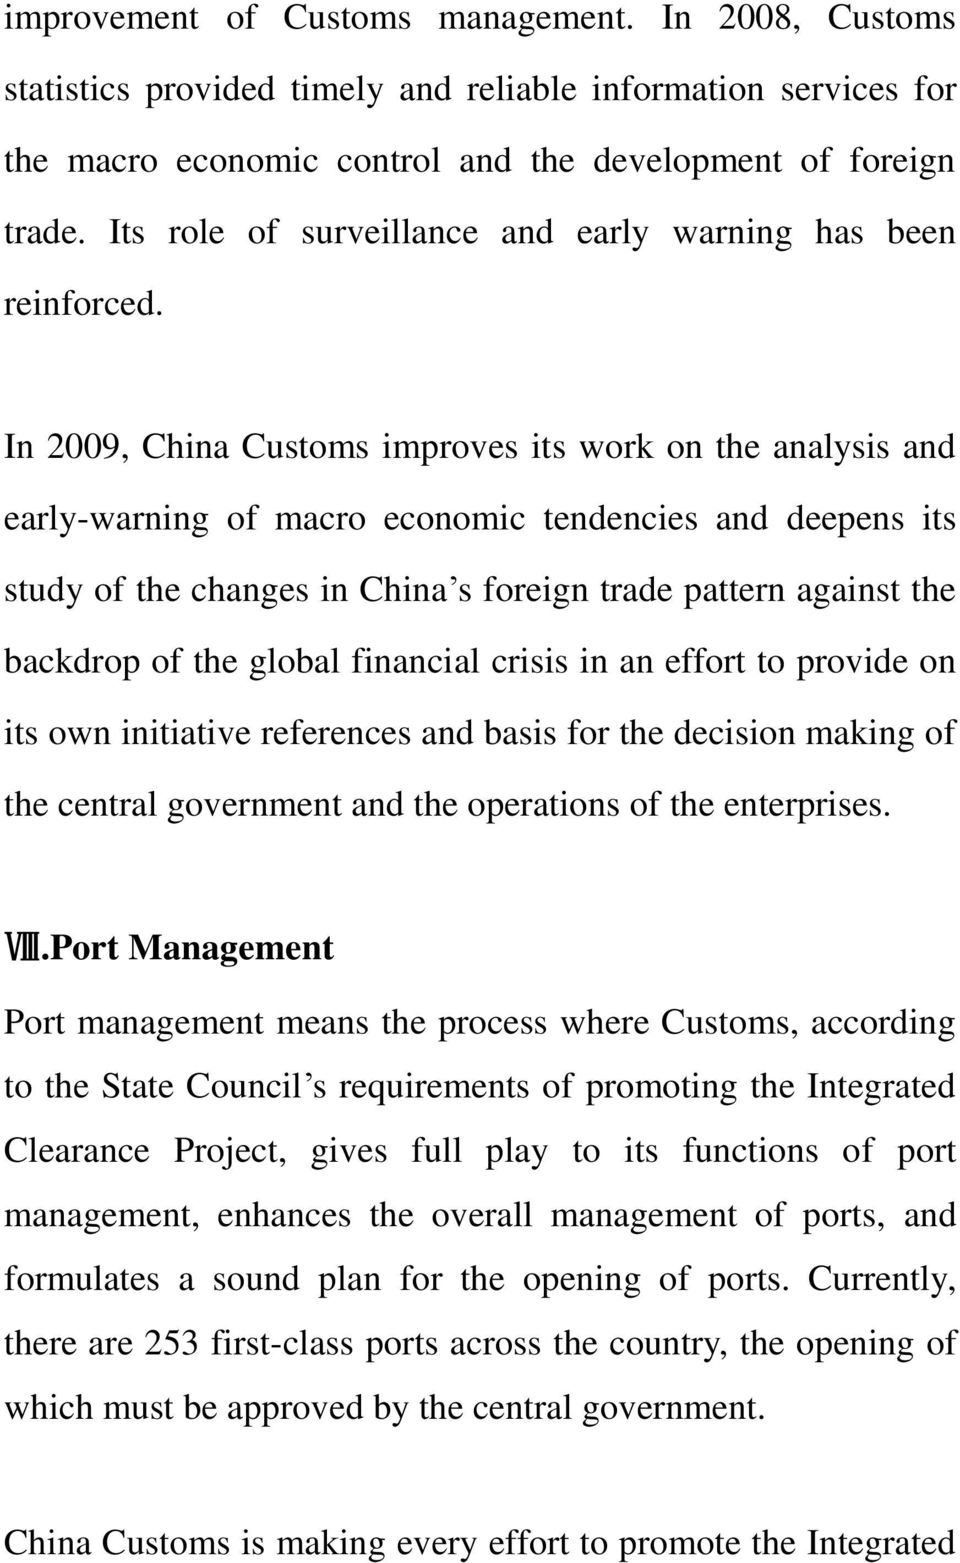 In 2009, China Customs improves its work on the analysis and early-warning of macro economic tendencies and deepens its study of the changes in China s foreign trade pattern against the backdrop of